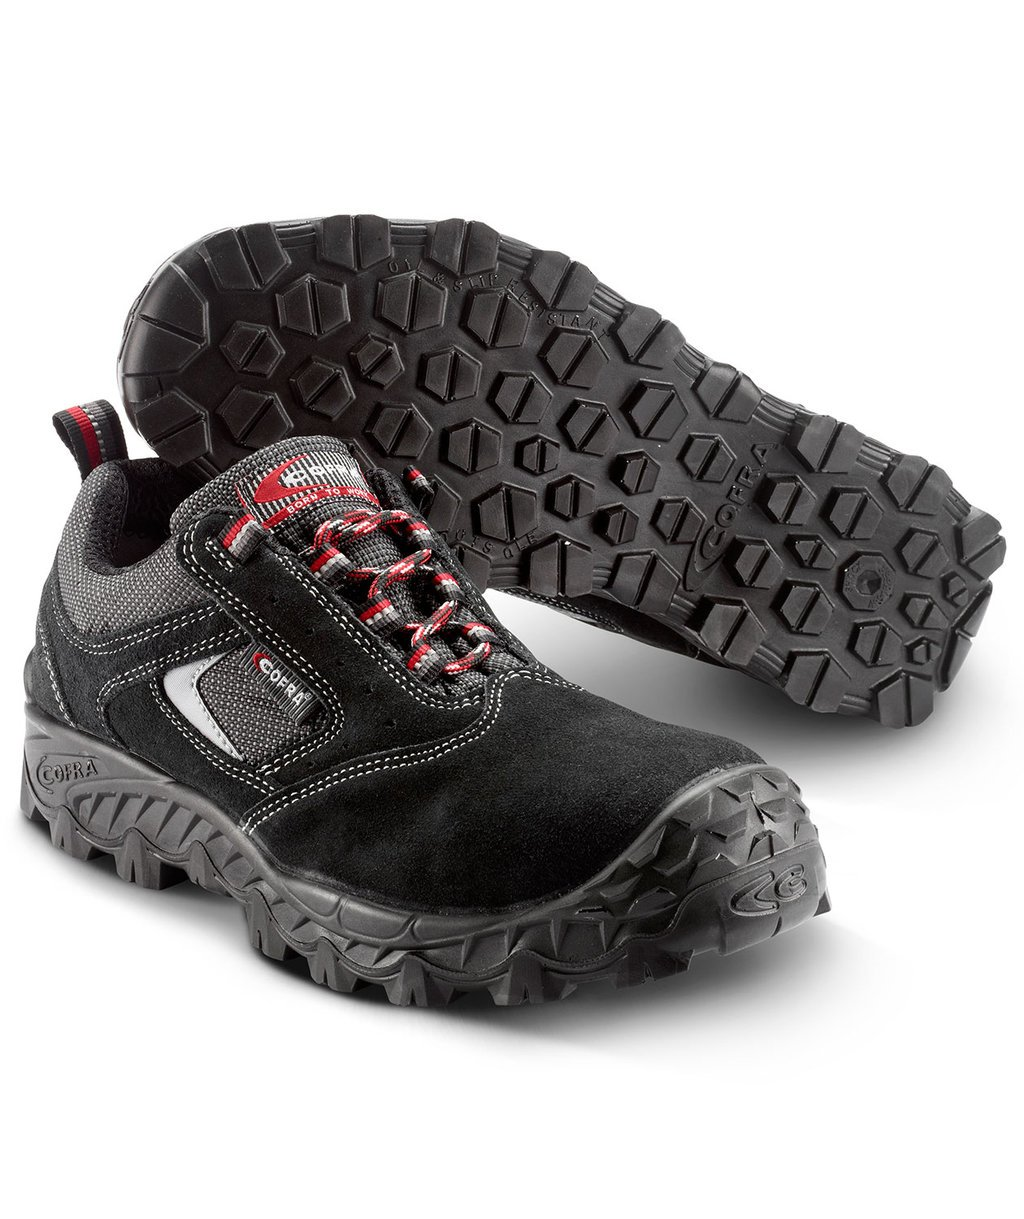 Cofra New Suez safety shoes S1P, Black